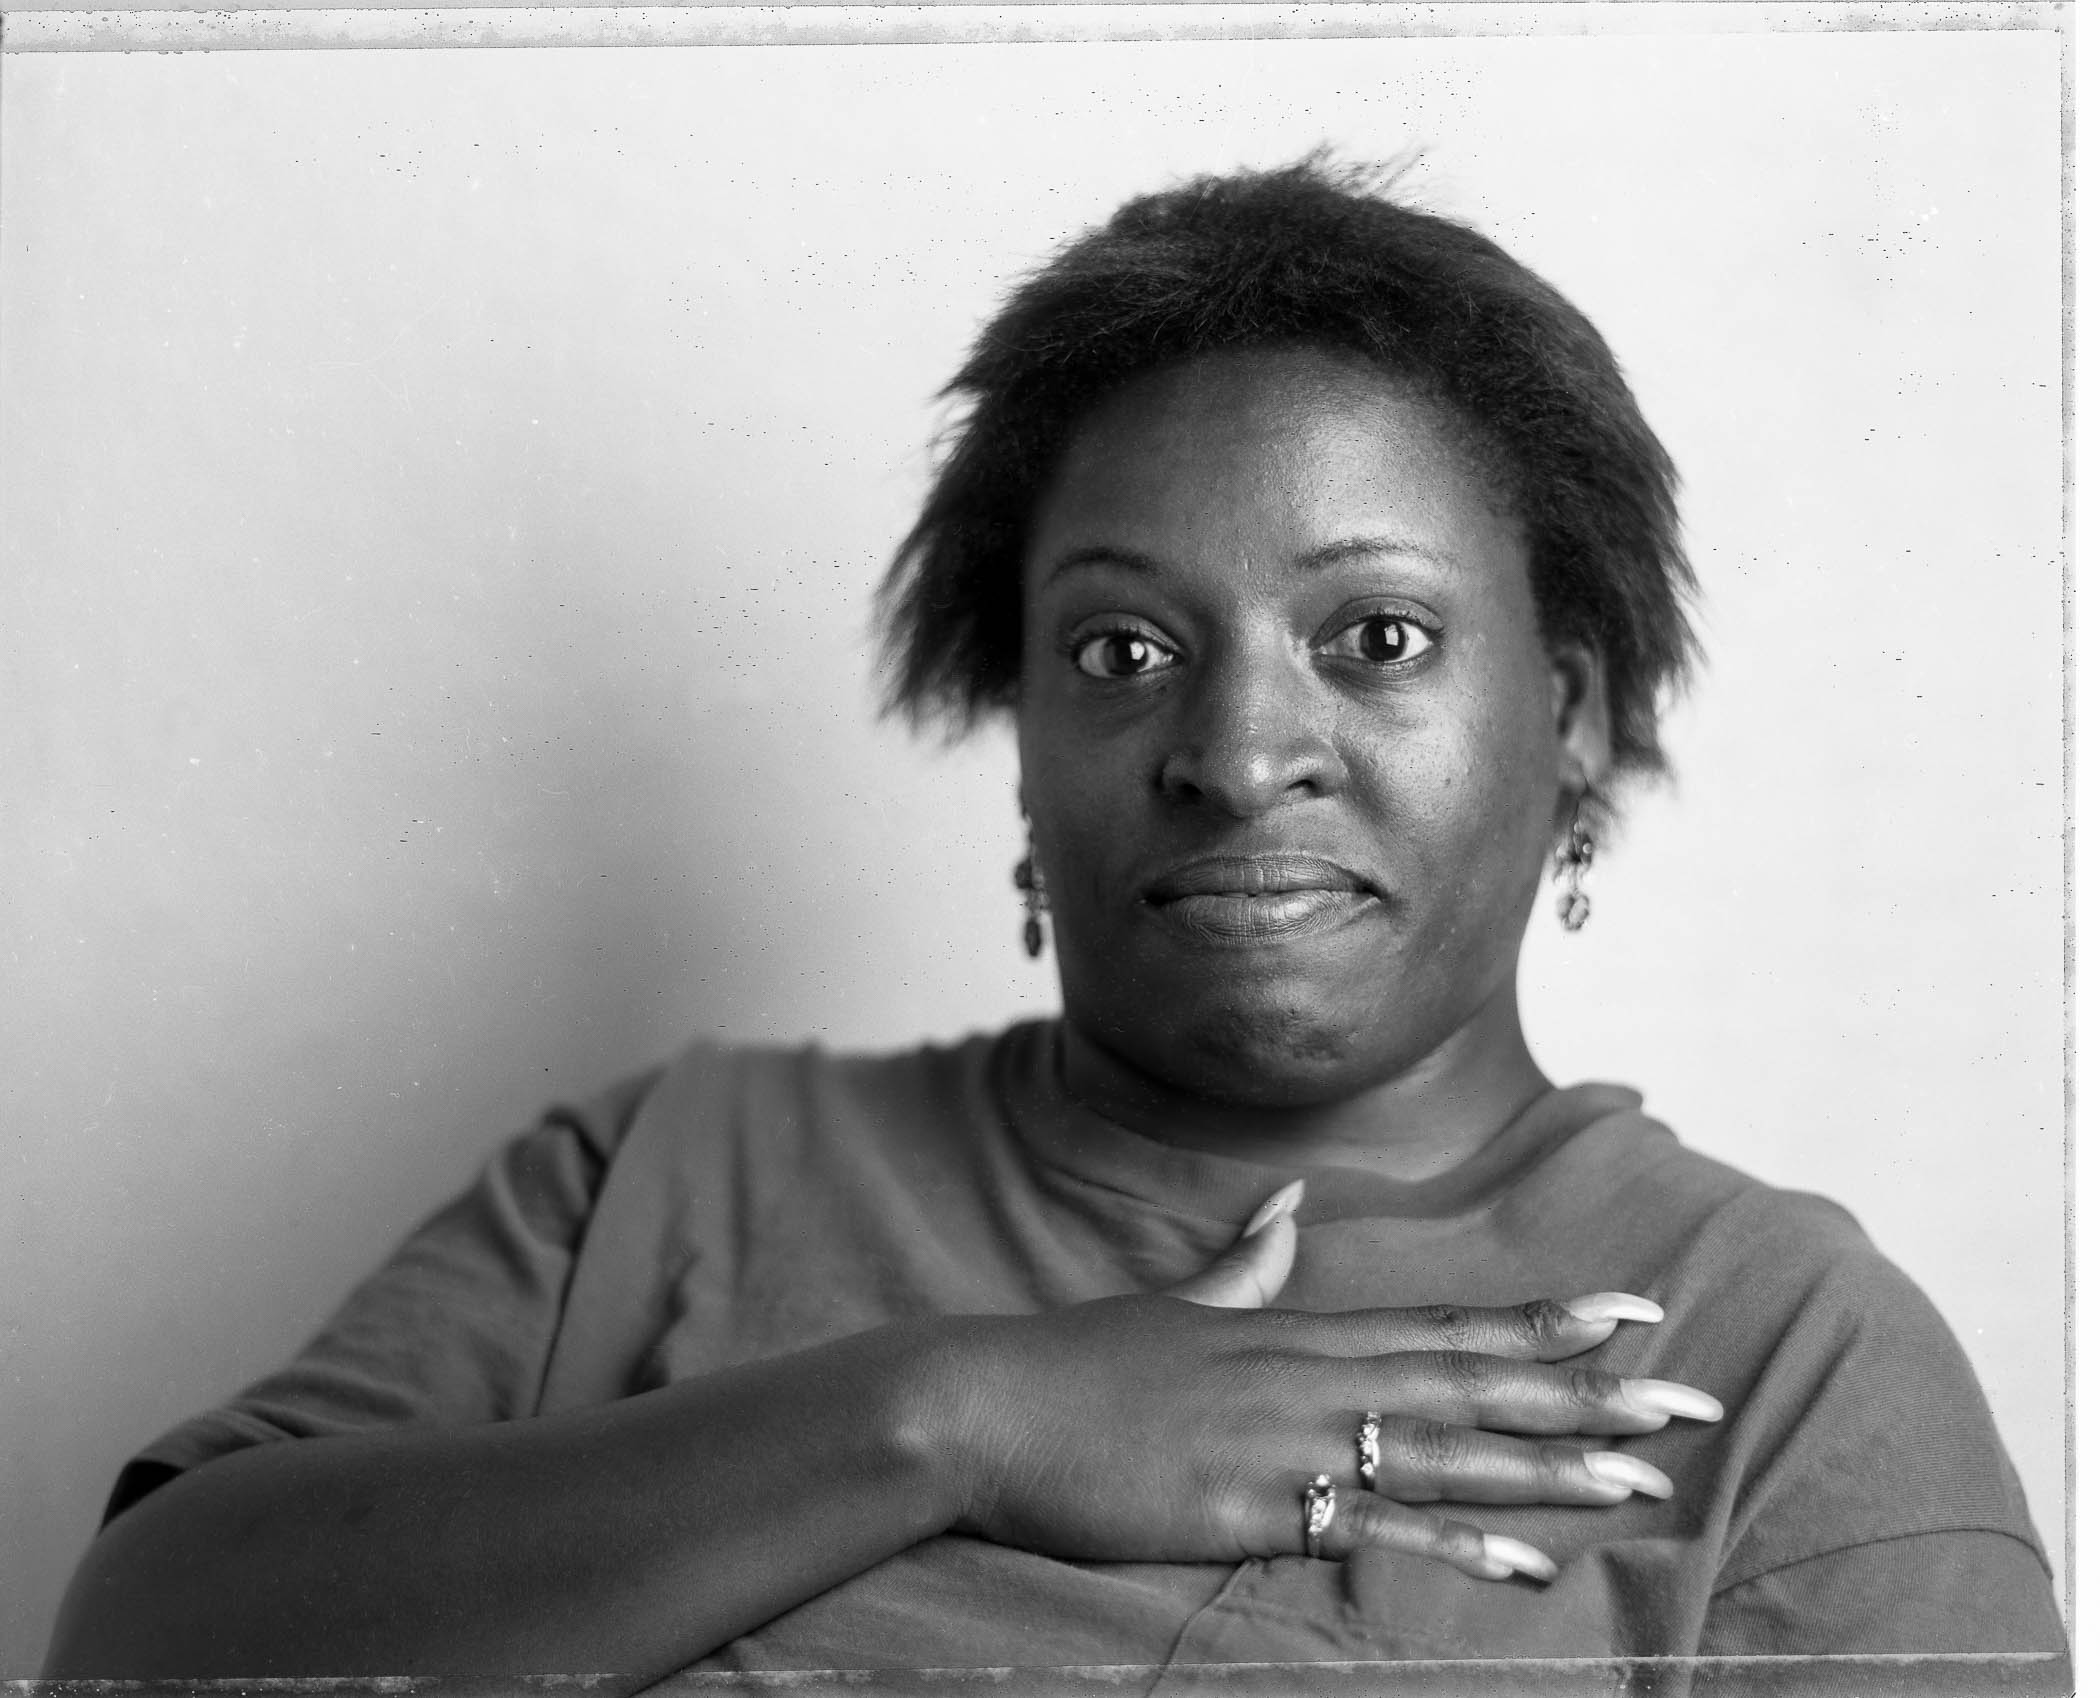 Woman with Long Fingernails,The Center for Aids Services, Oakland